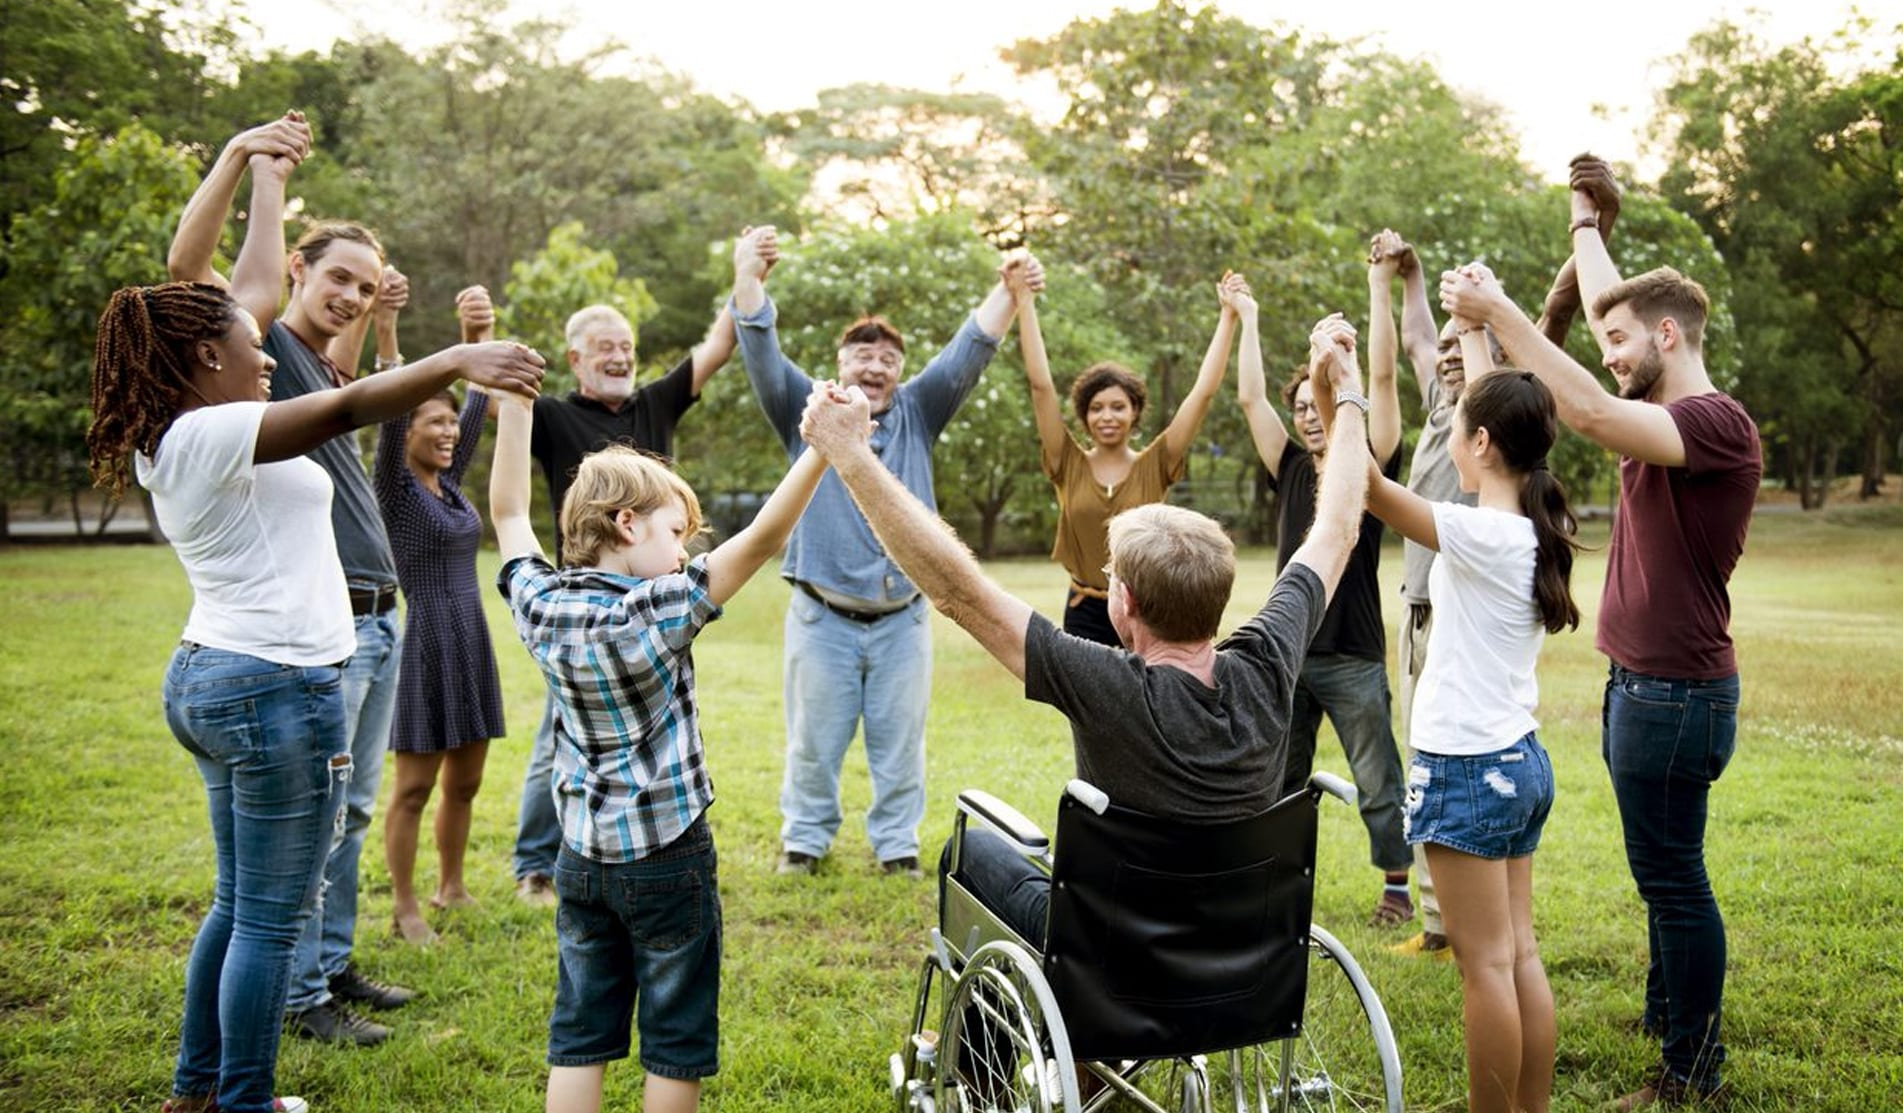 Social Activities For People With Disabilities